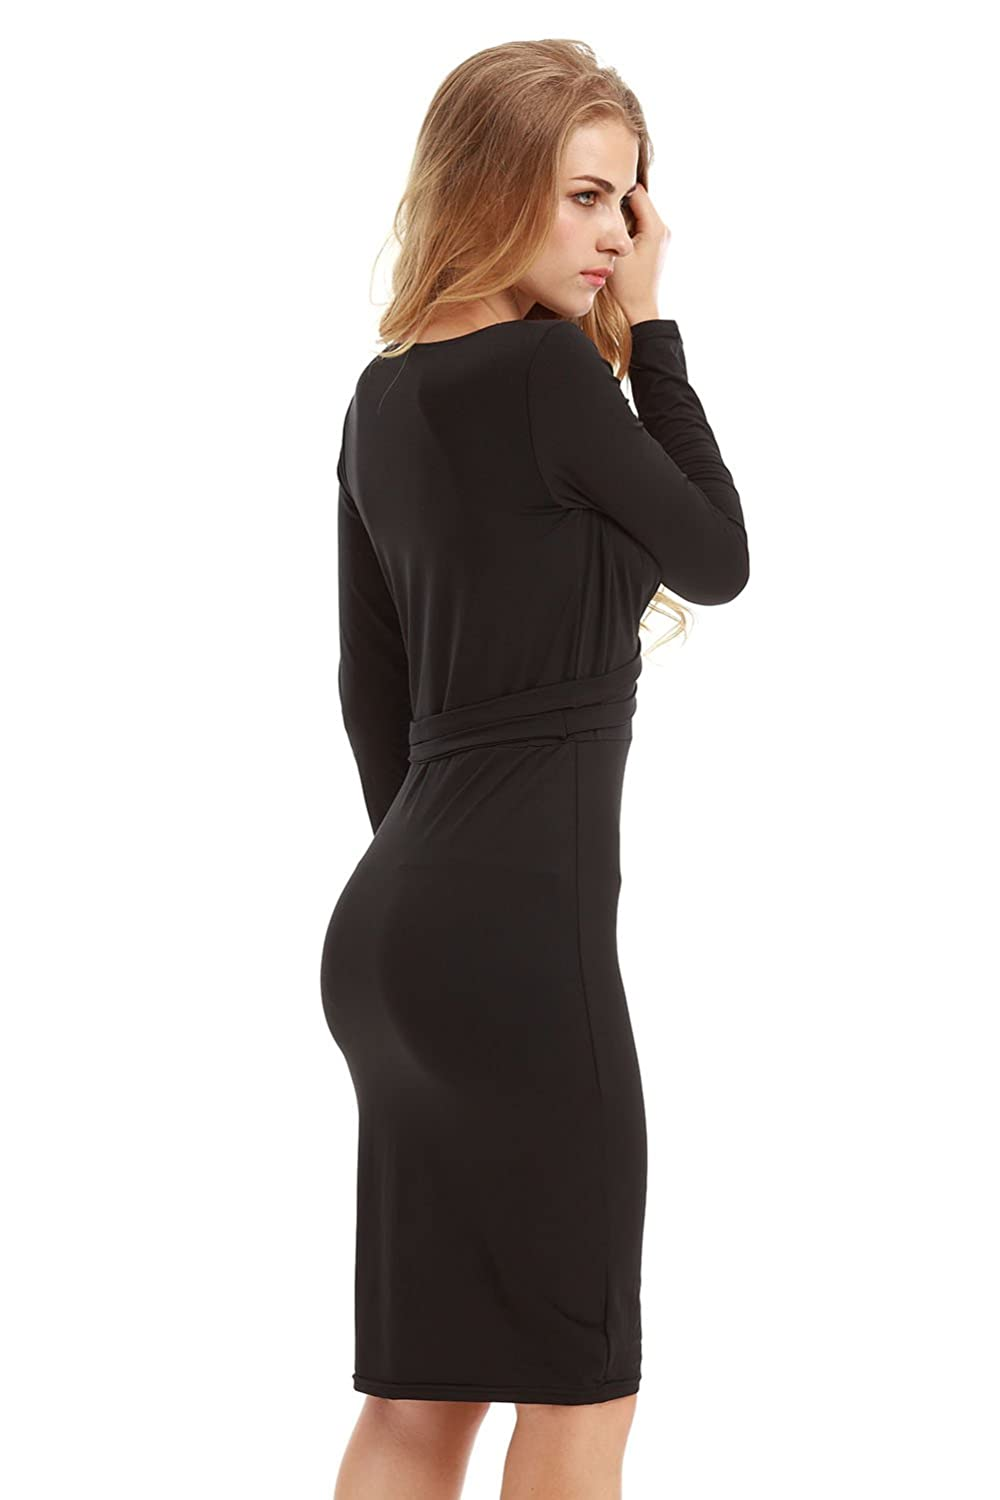 TeeDoc Women Long Sleeve Plunging Neck Stretch Bodycon Party Bandage Dresses